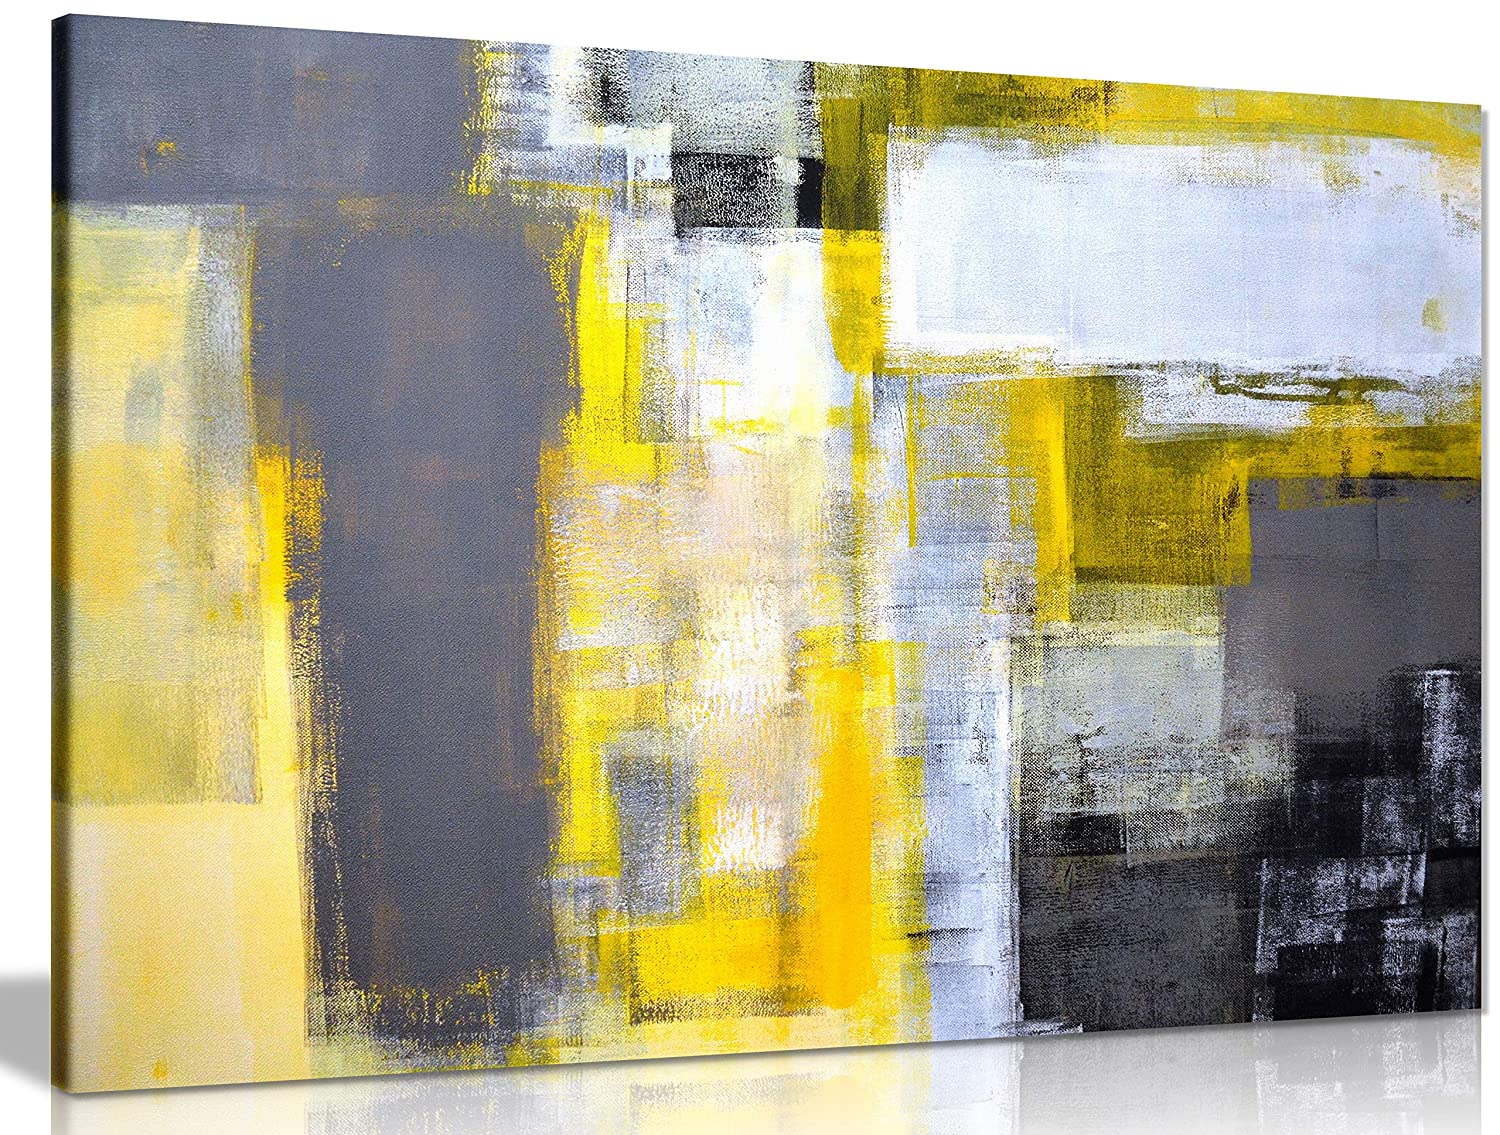 9c8e4e510a5 Office Art Grey And Yellow Abstract Art Painting Canvas Wall Art Picture  Print (24X16)  Amazon.co.uk  Kitchen   Home